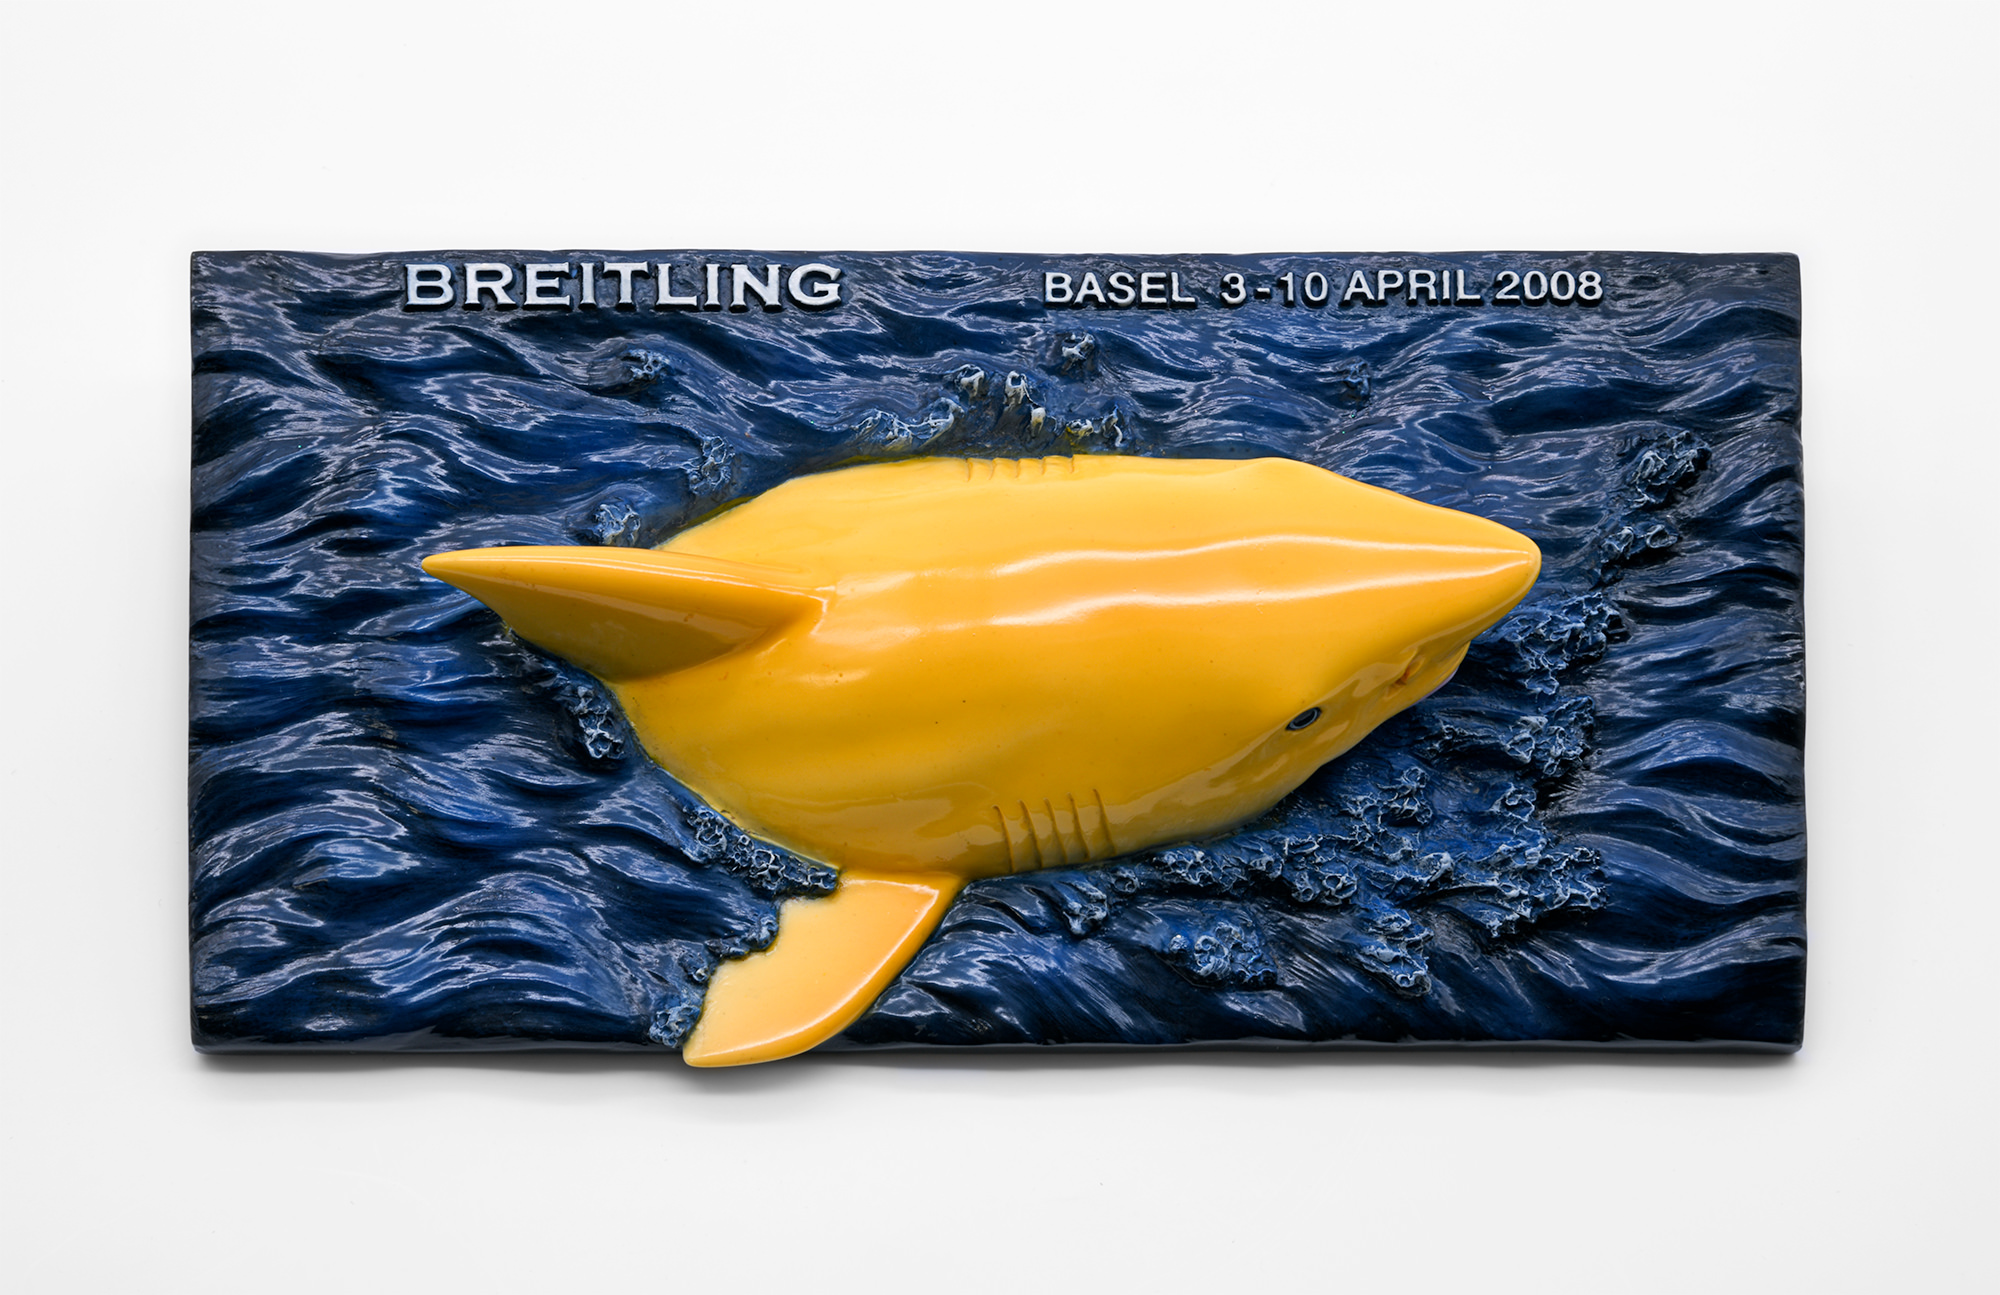 Breitling-shark-sculpture-3